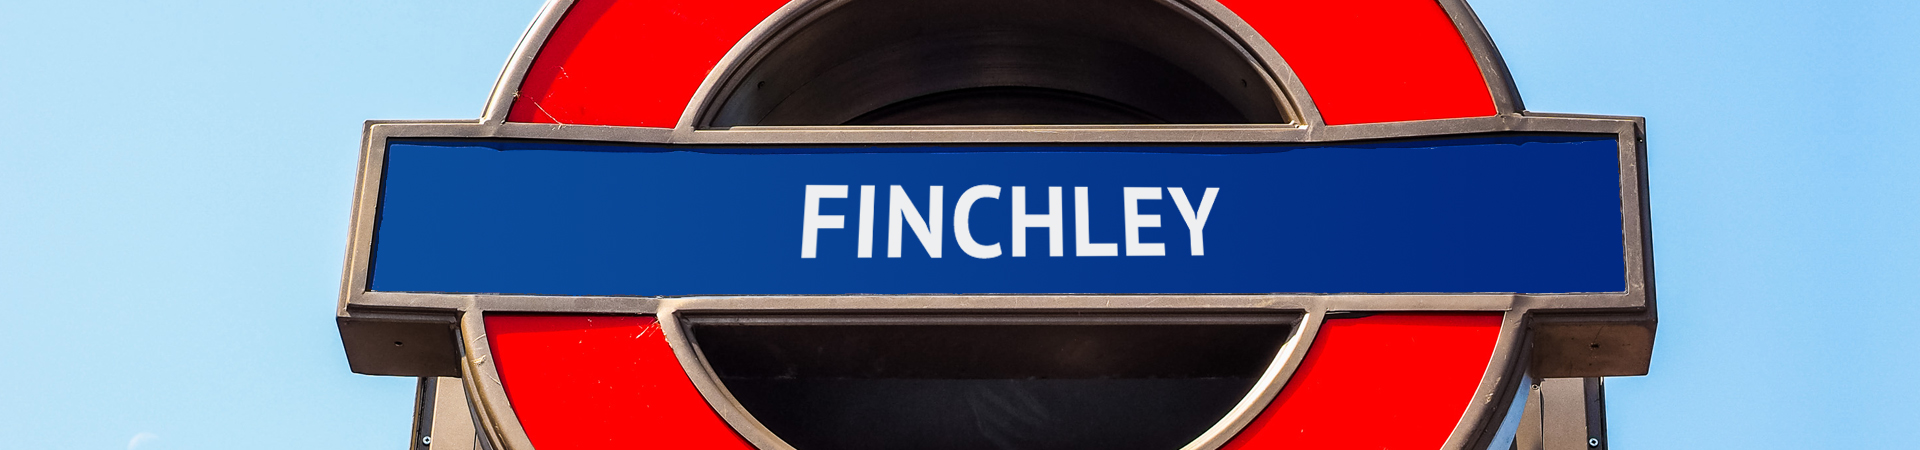 finchley landscaping services